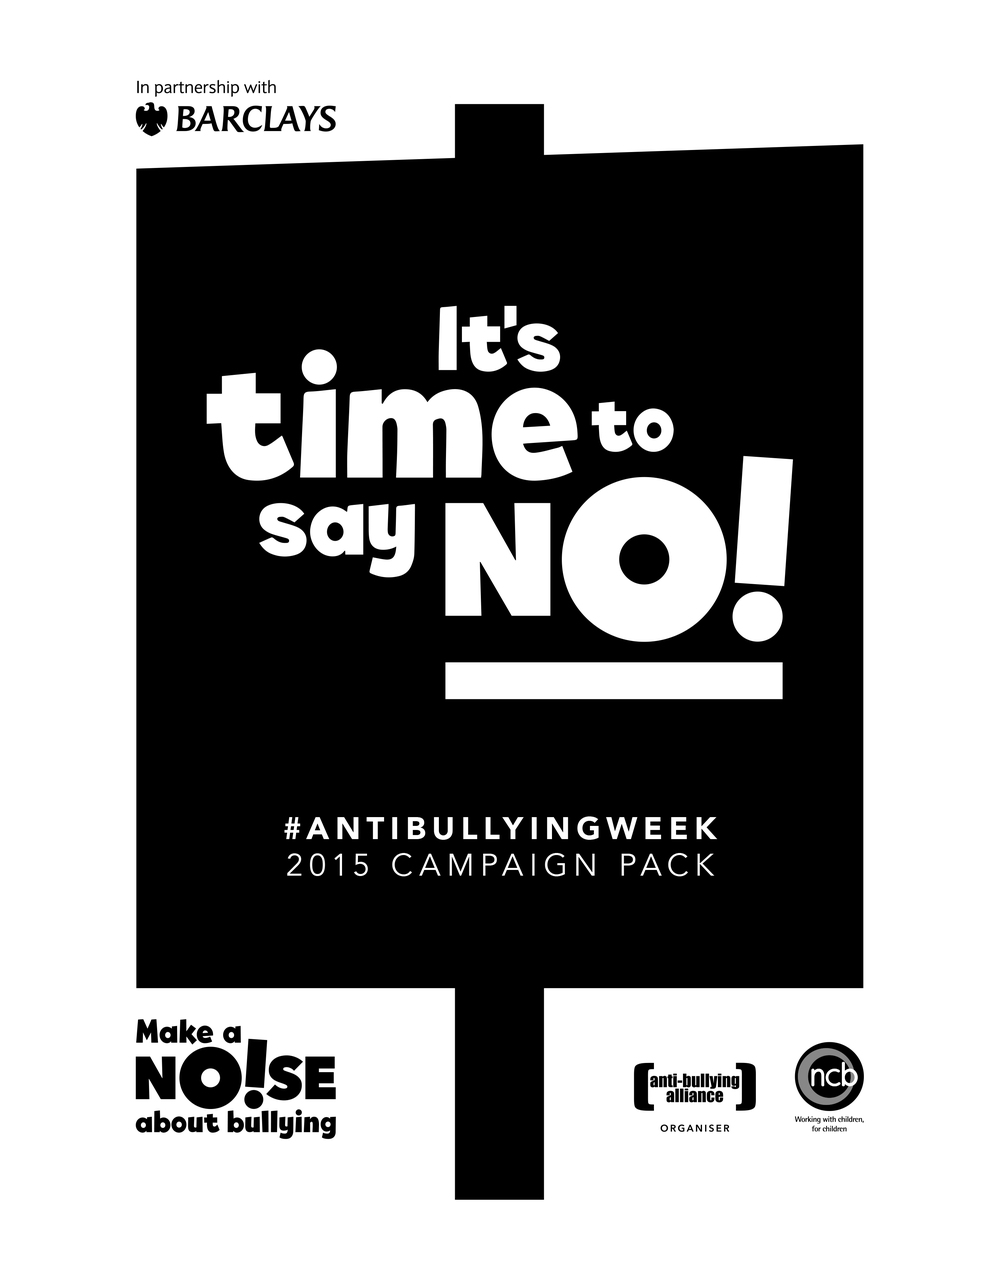 CLICK HERE TO VIEW THE ANTI BULLYING ALLIANCE CAMPAIGN PACK FOR 2015!